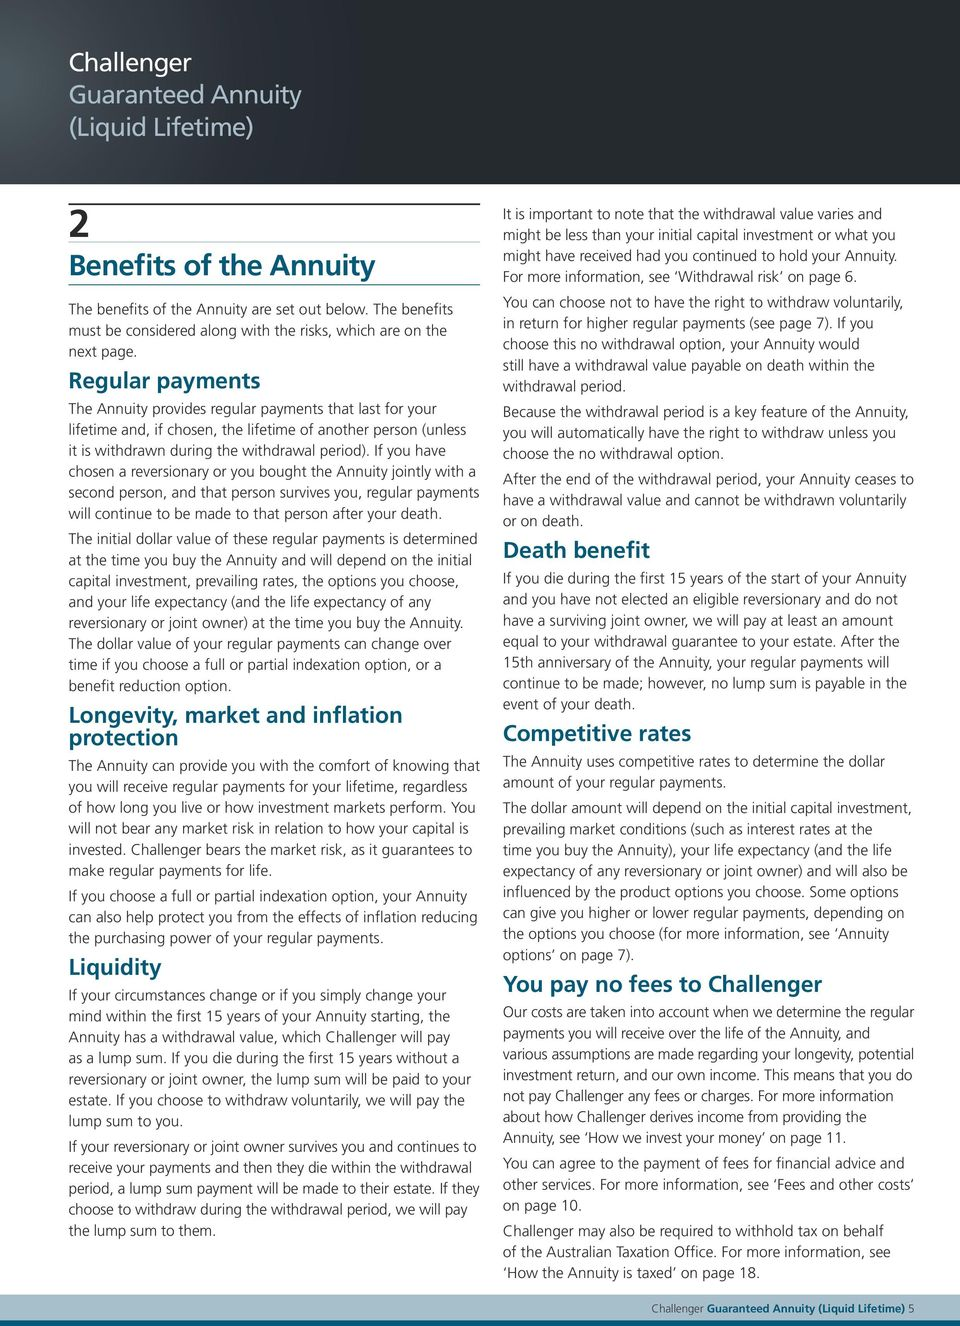 Regular payments The Annuity provides regular payments that last for your lifetime and, if chosen, the lifetime of another person (unless it is withdrawn during the withdrawal period).